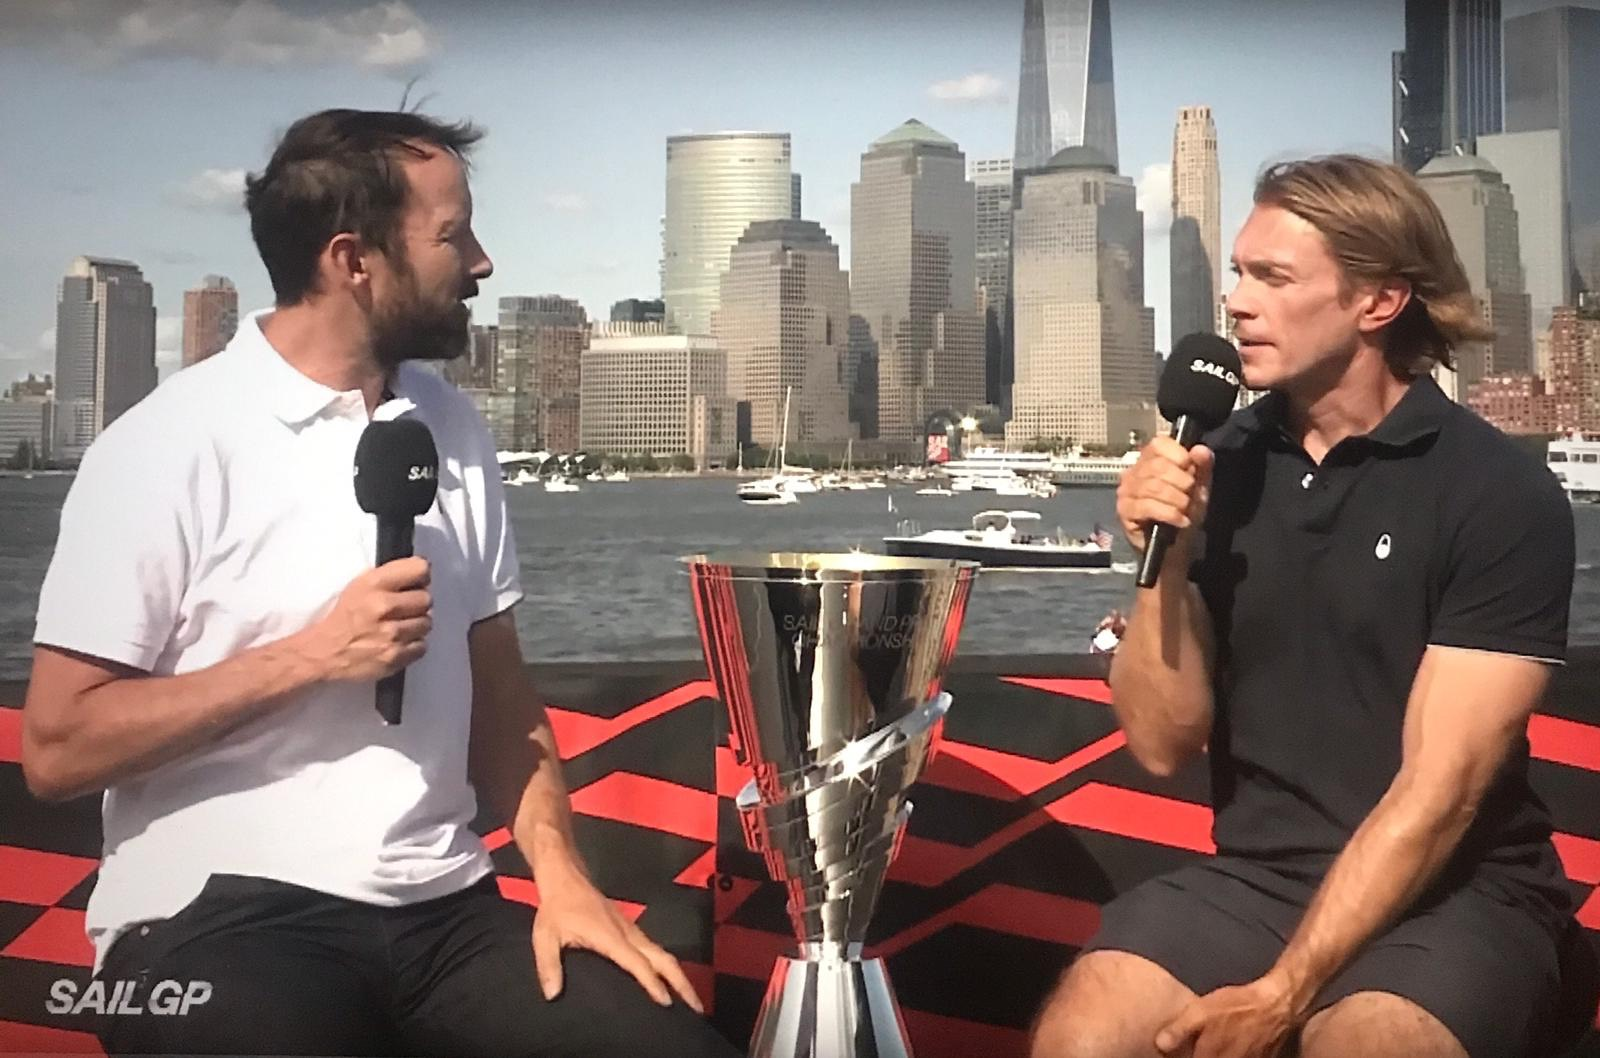 Matt Cornwell Broadcasting At NY Sail GP Regatta